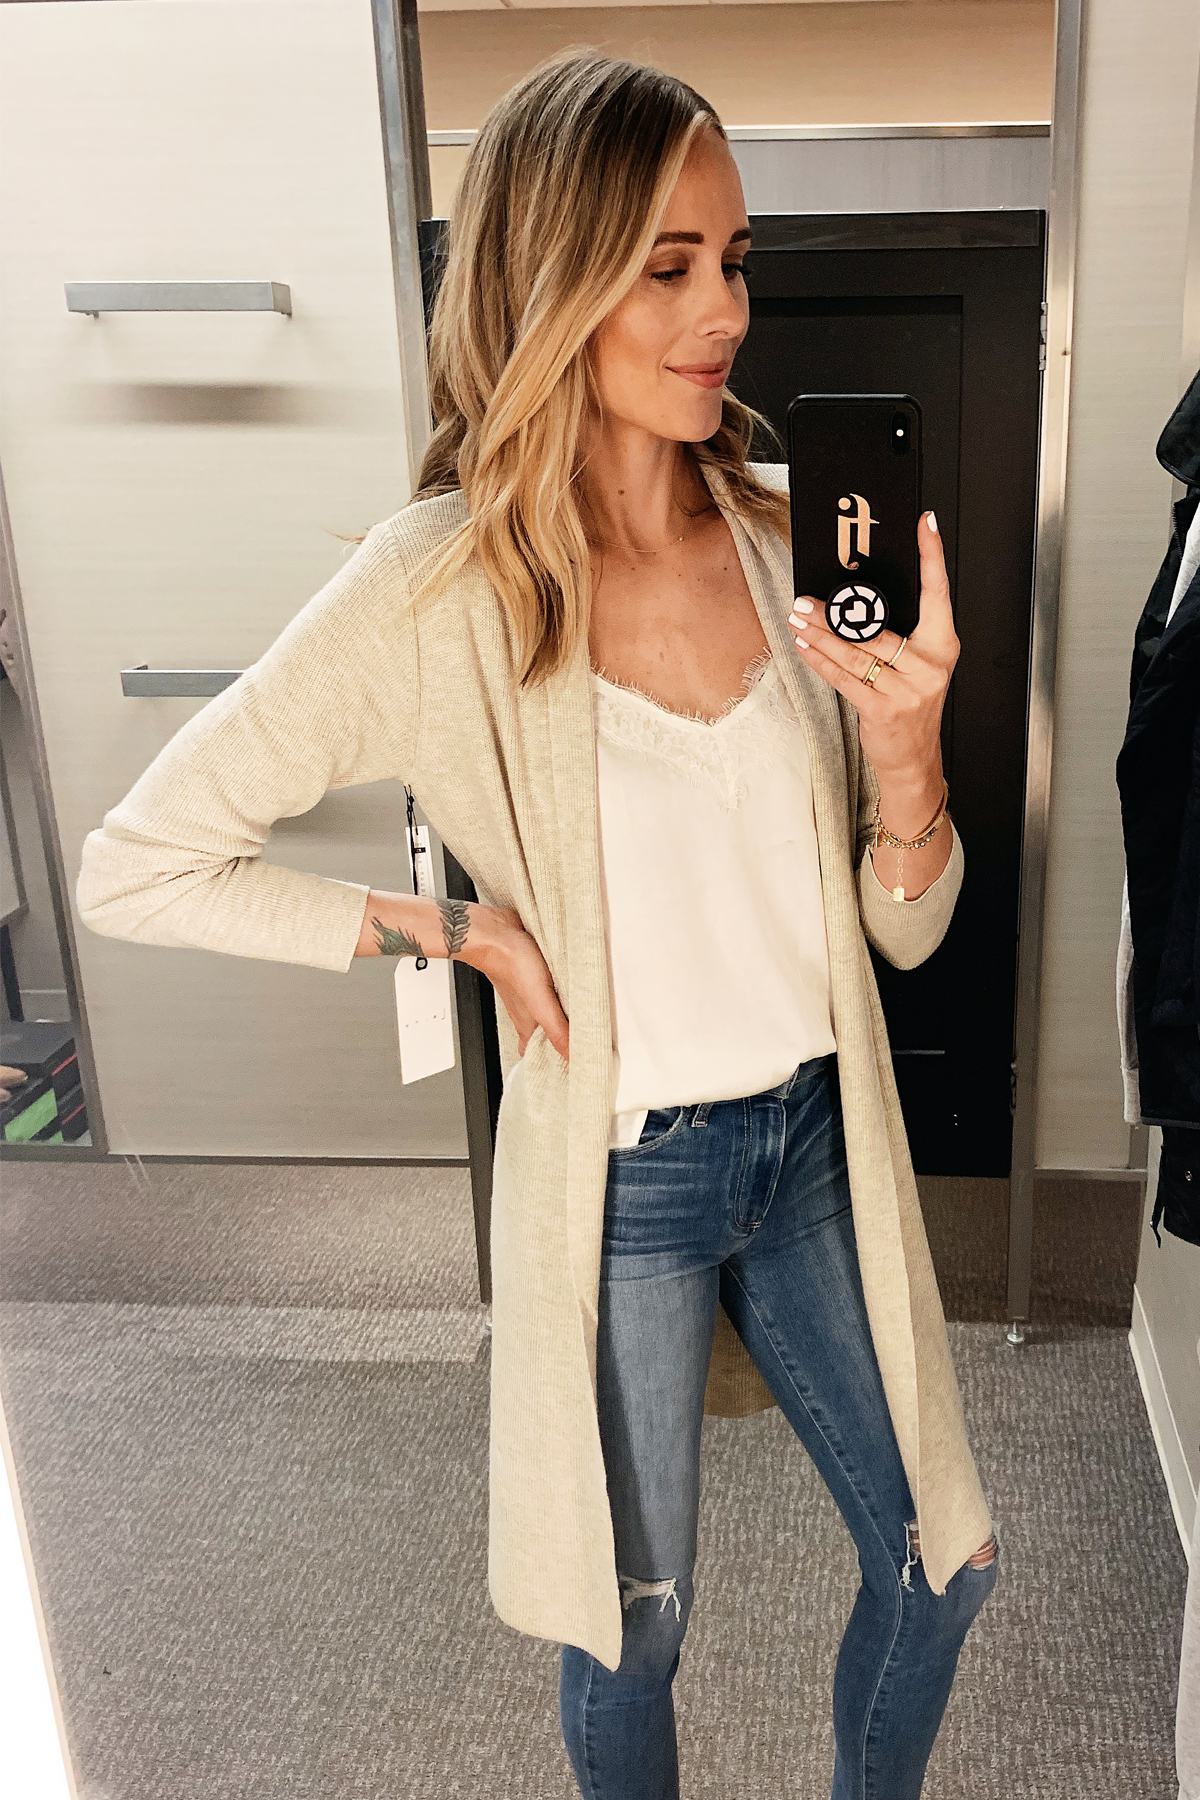 Fashion Jackson Wearing Nordstrom Annivesary Sale Leith Beige Long Cardigan BP White Lace Camisole Paige Ripped Skinny Jeans